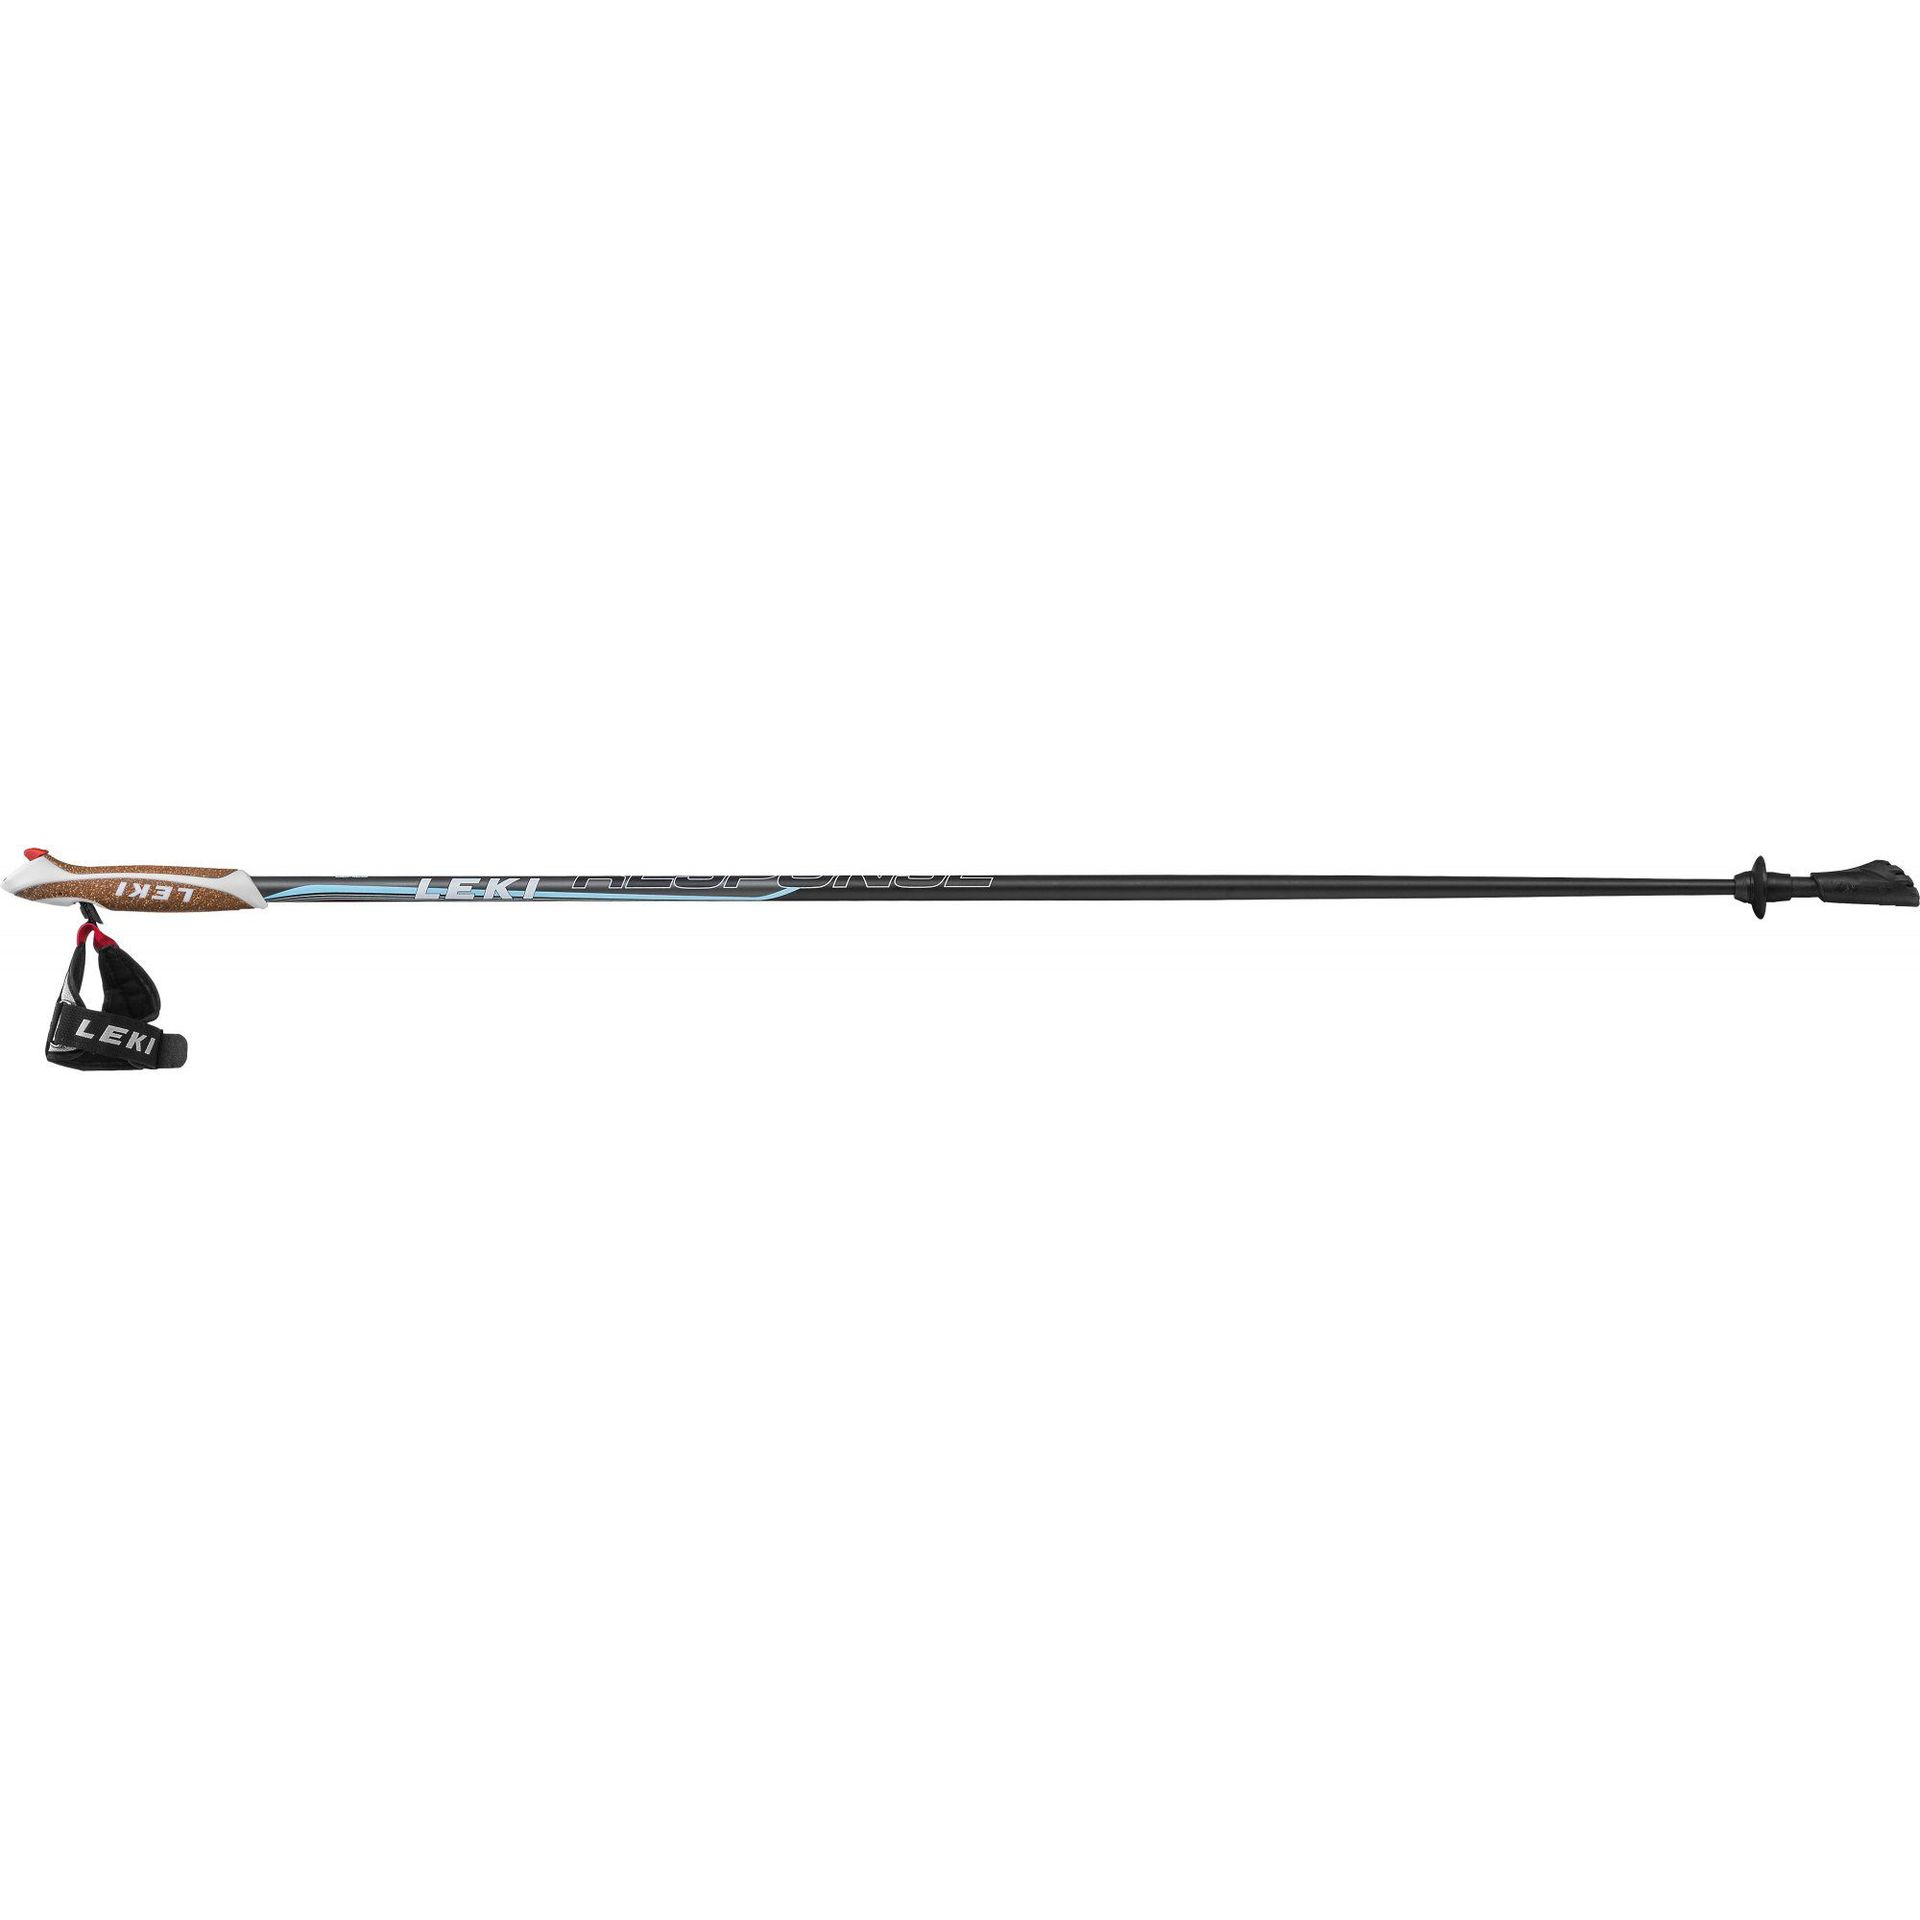 KIJE NORDIC WALKING LEKI RESPONSE LADY 6402516